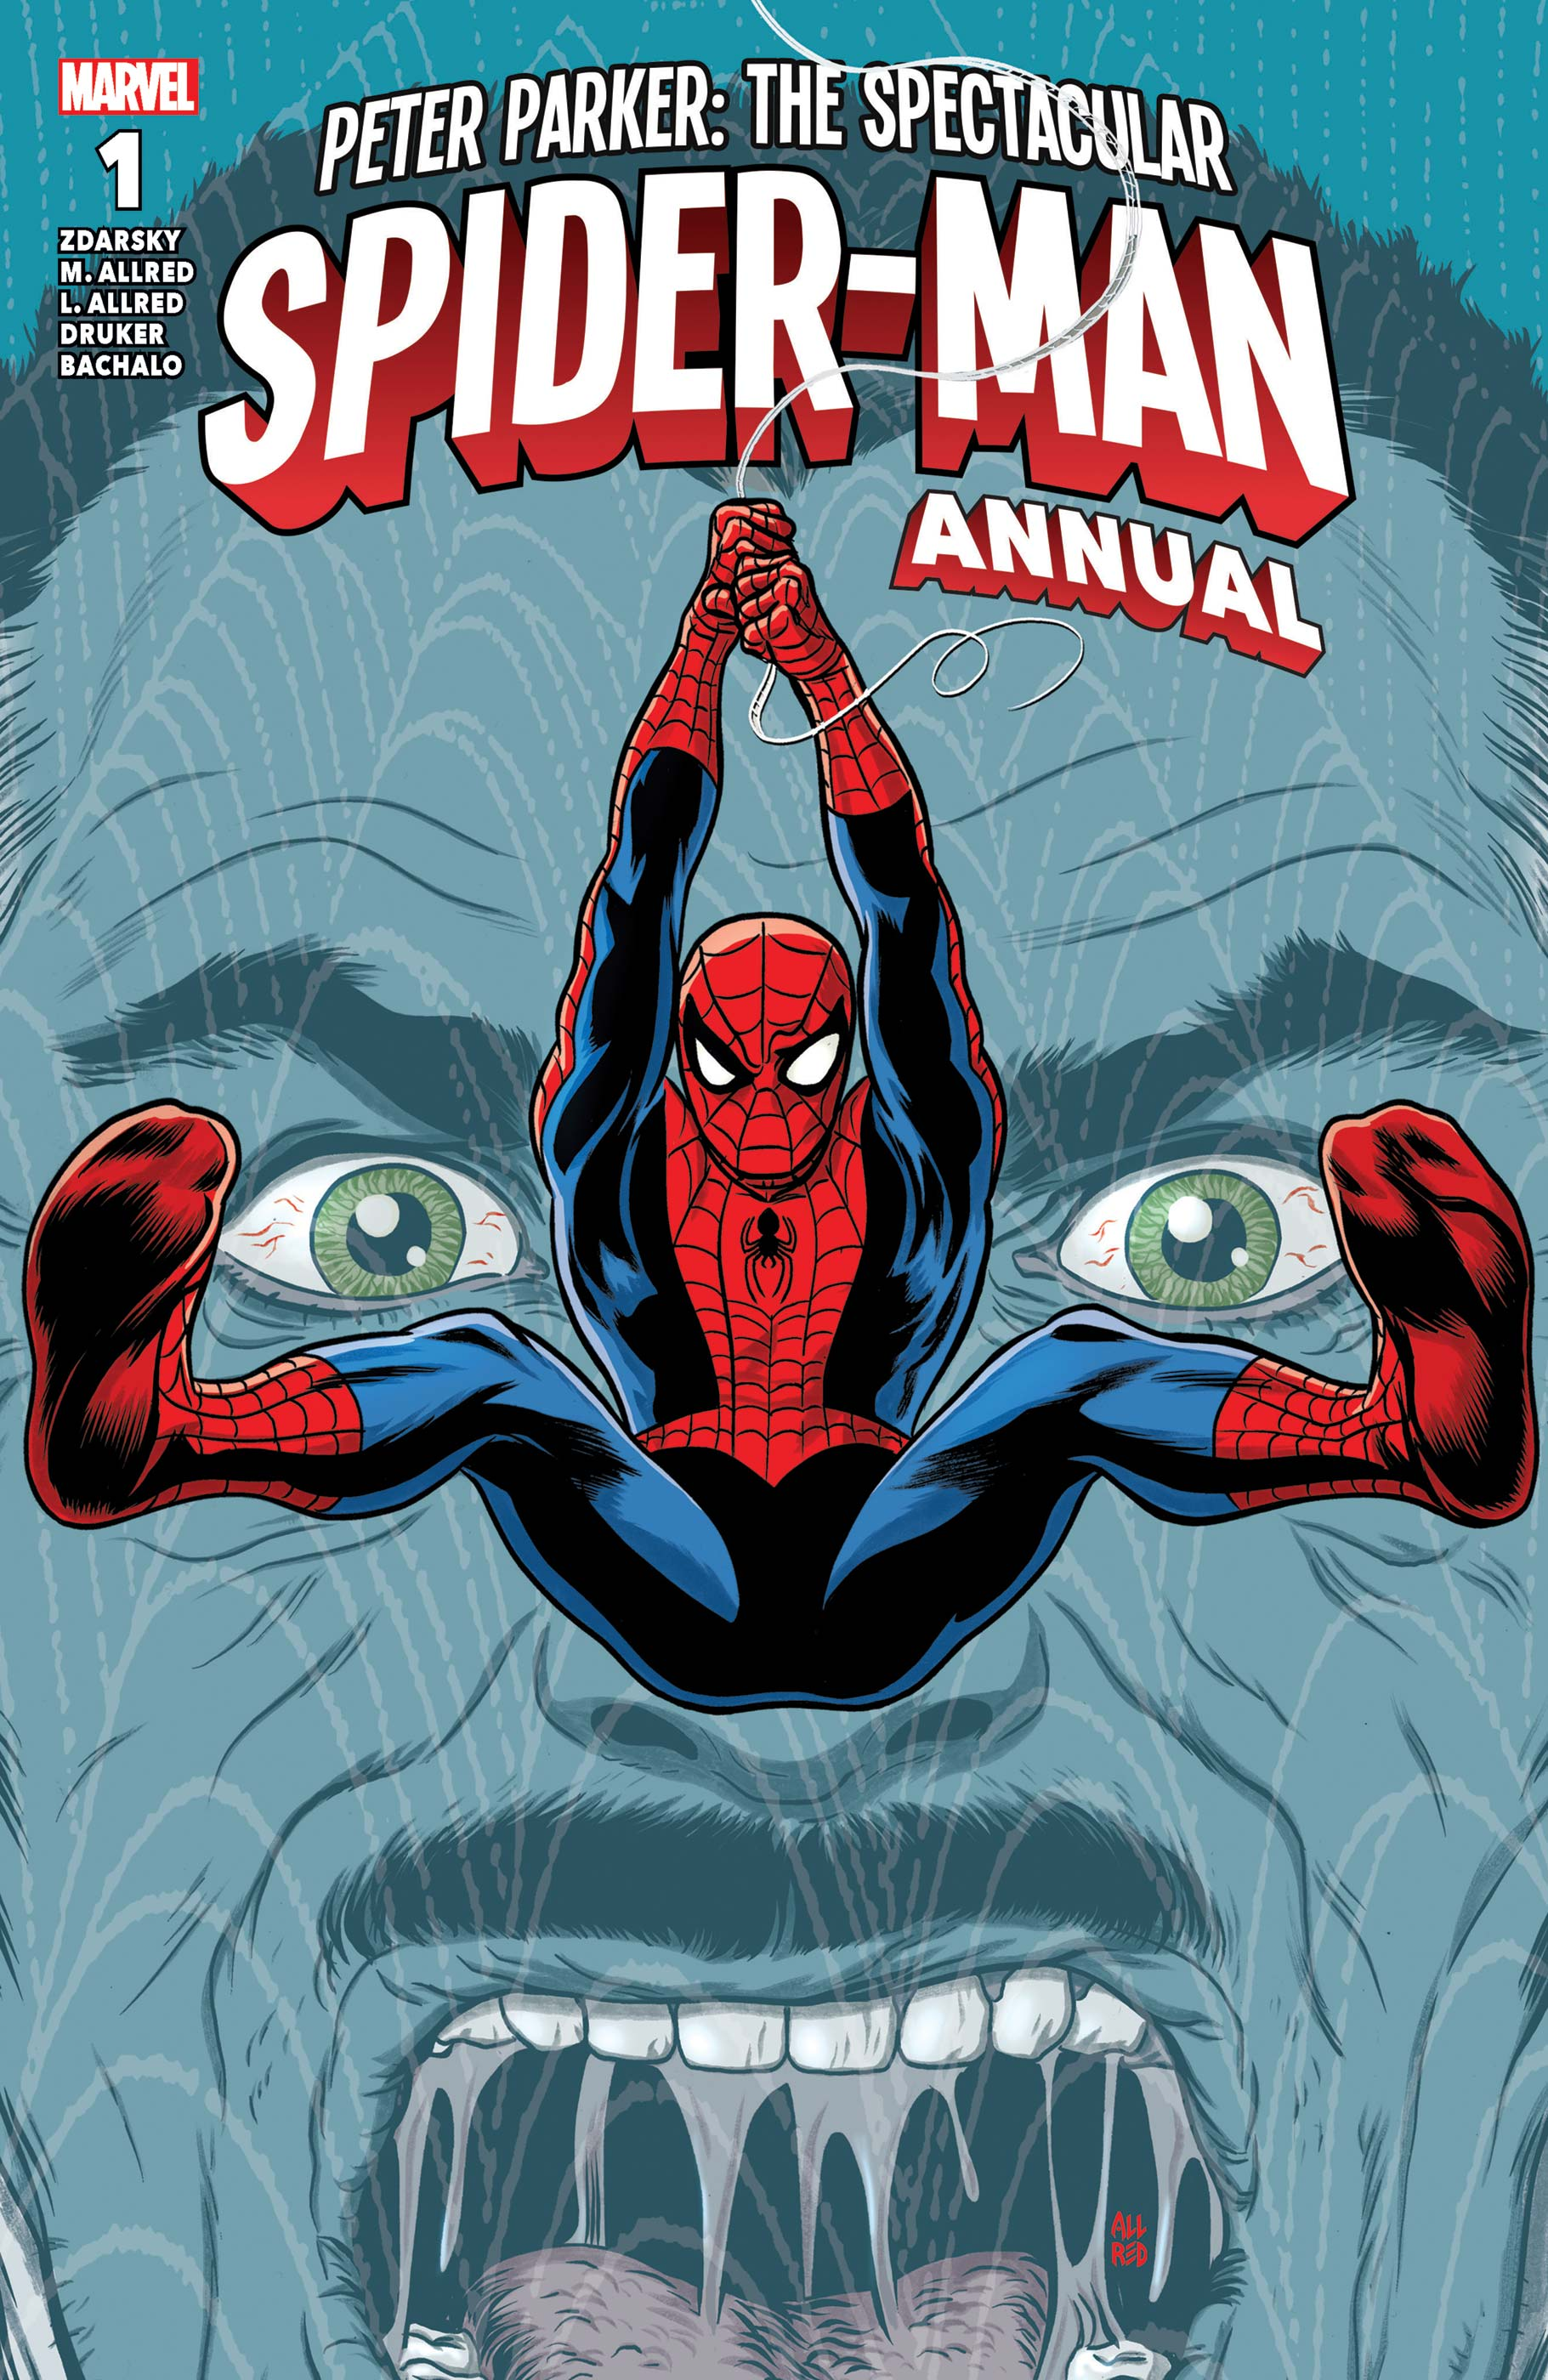 Peter Parker: The Spectacular Spider-Man Annual (2018) #1